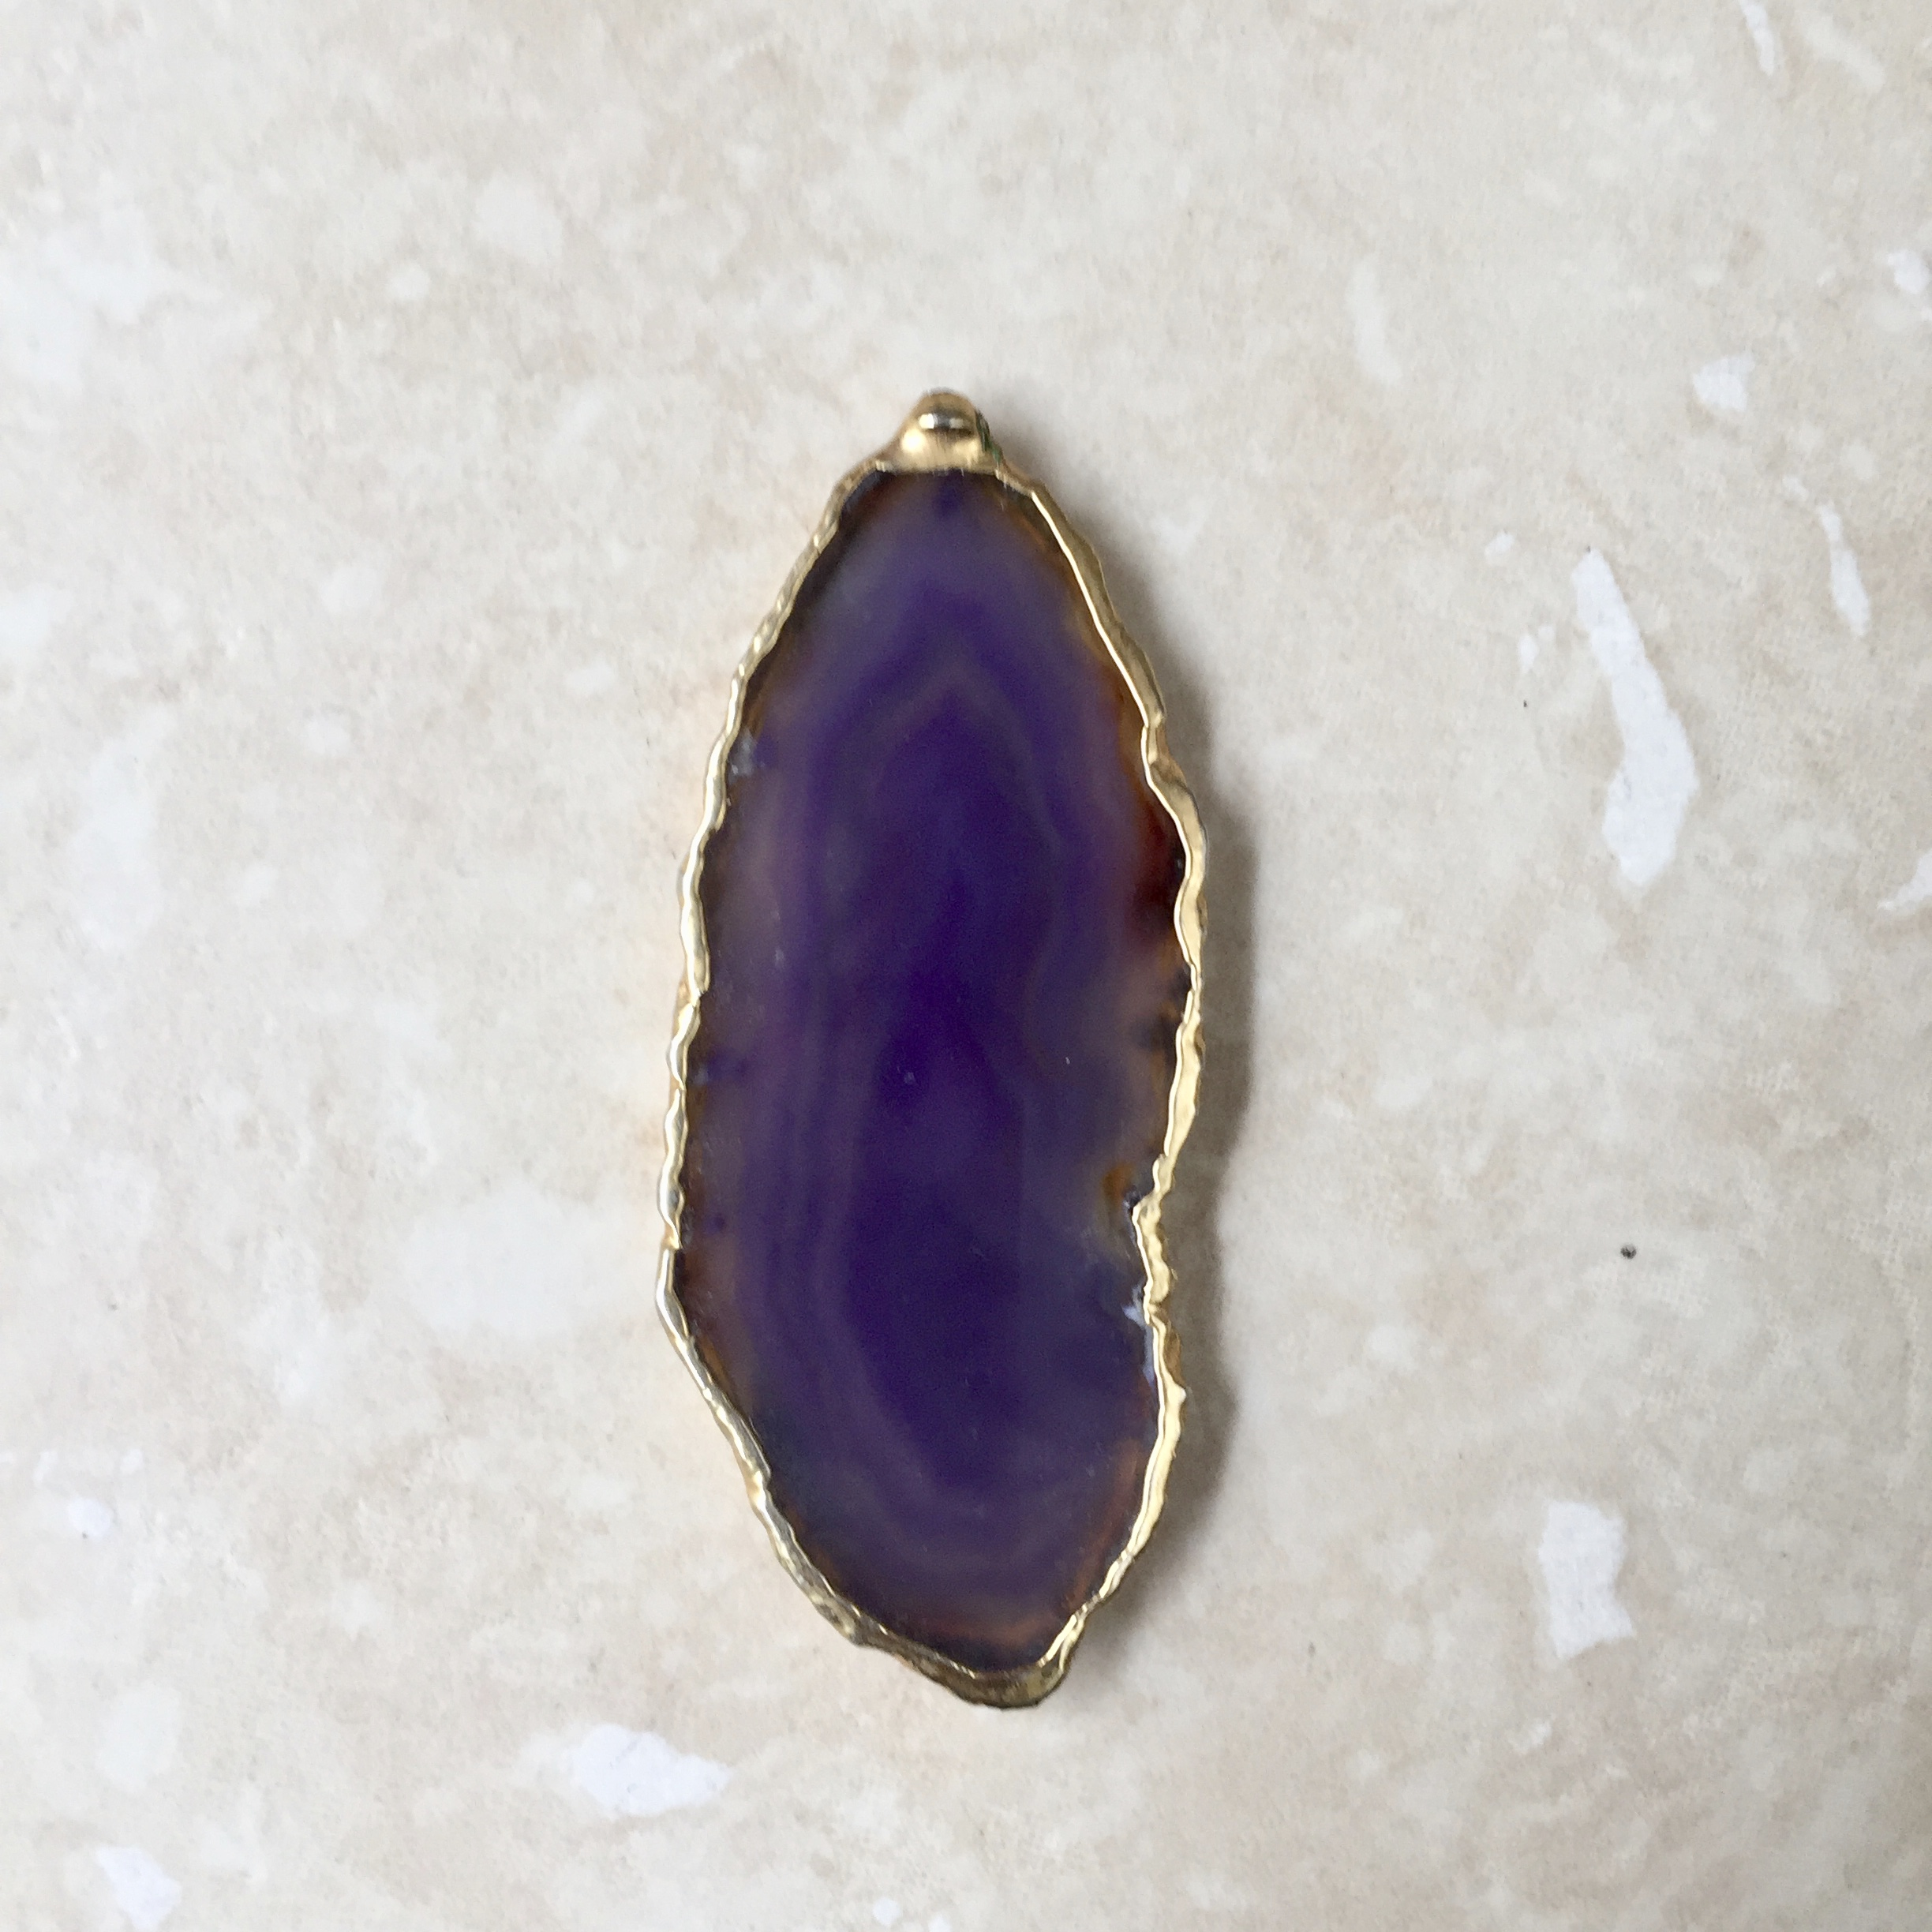 Dyed agate with edges painted in gold